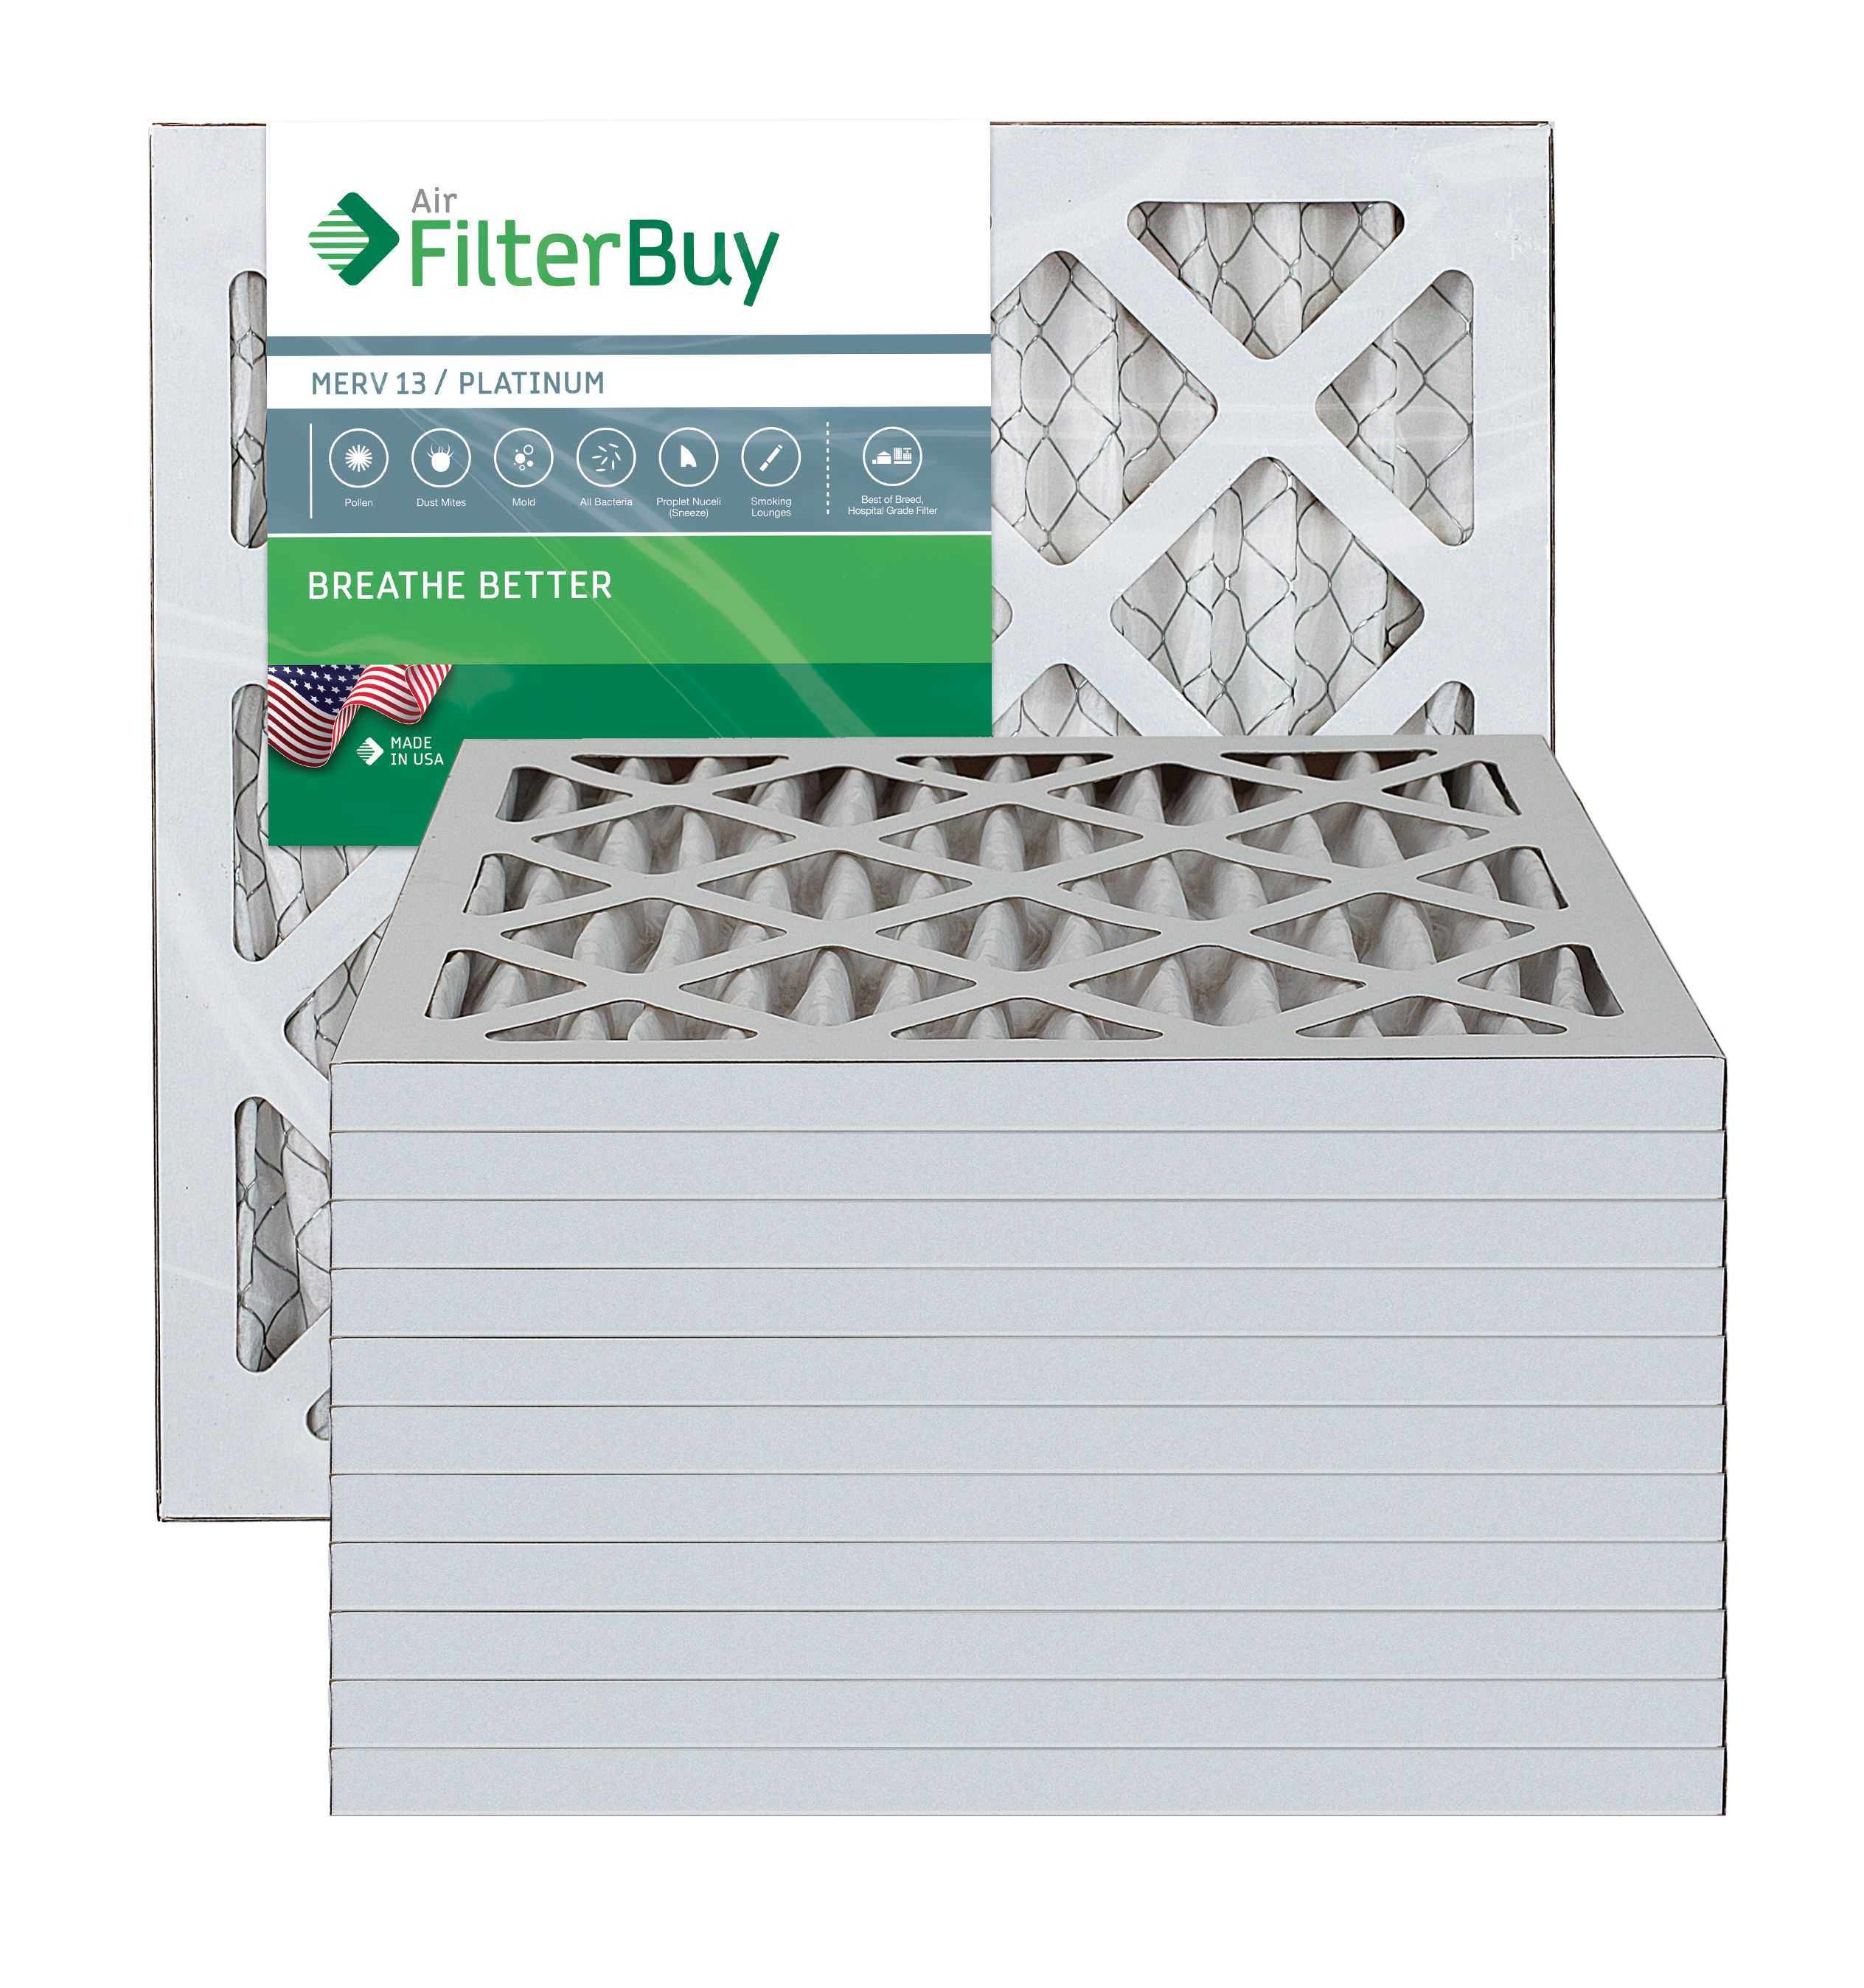 AFB Platinum MERV 13 11.25x11.25x1 Pleated AC Furnace Air Filter. Pack of 12 Filters. 100% produced in the USA.